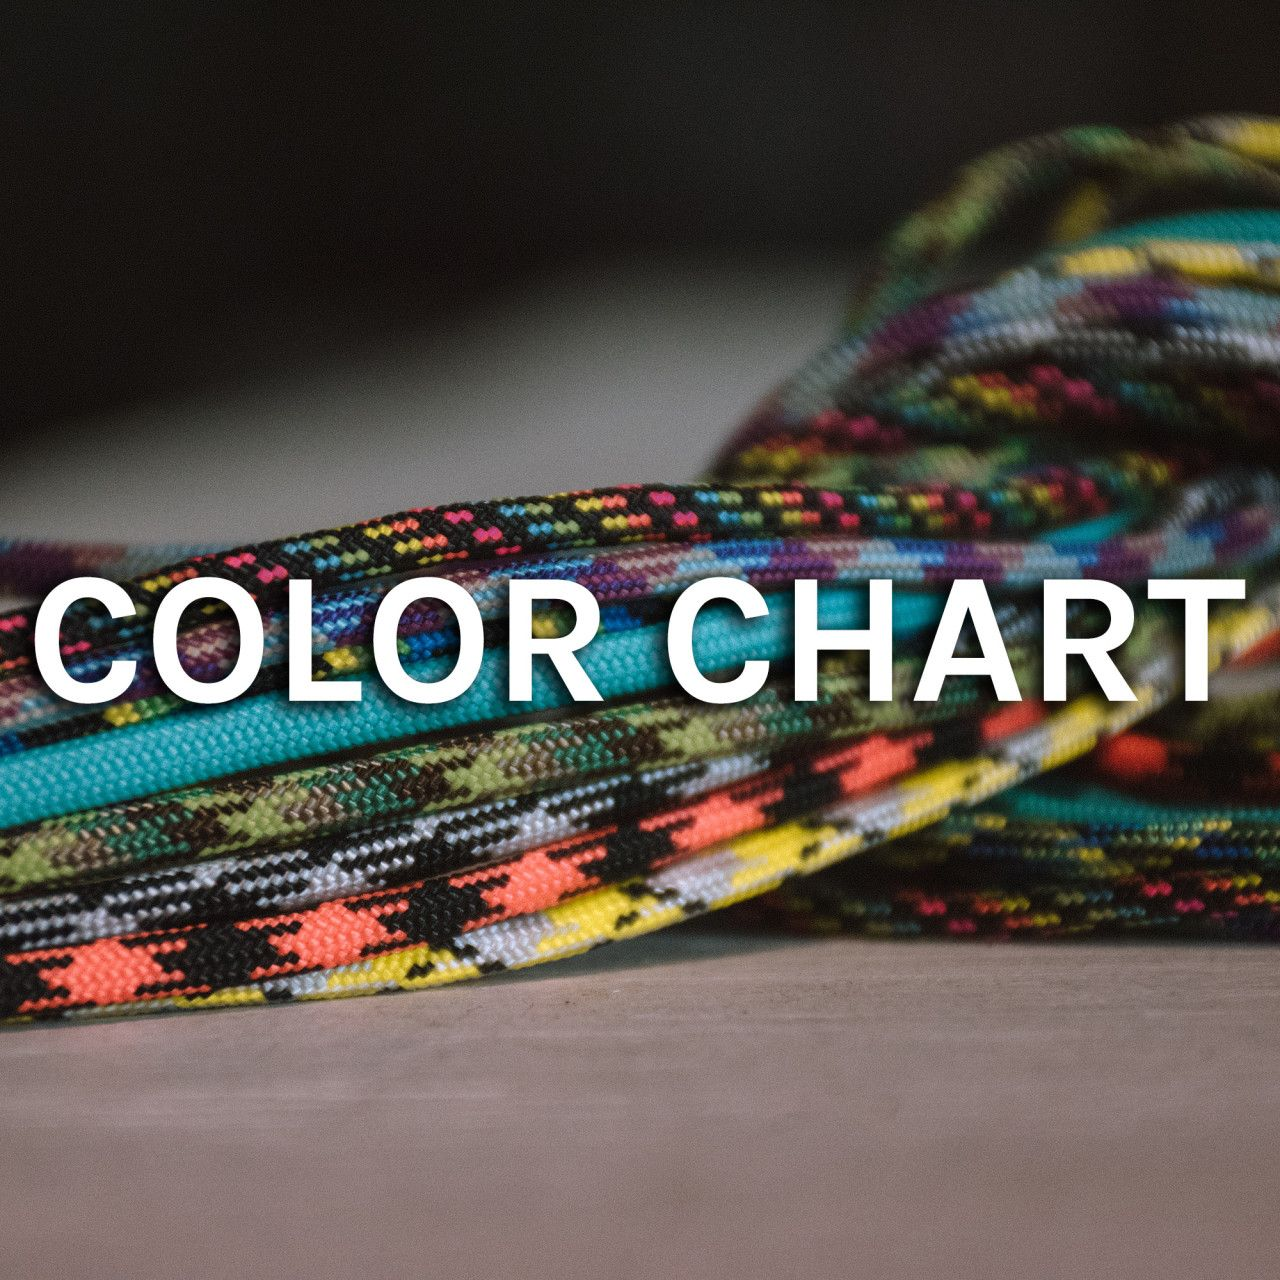 Paracord Planet S Color Chart Shows All Of Our Patterns And Color Variations Paracord Planet Paracord Knots Paracord